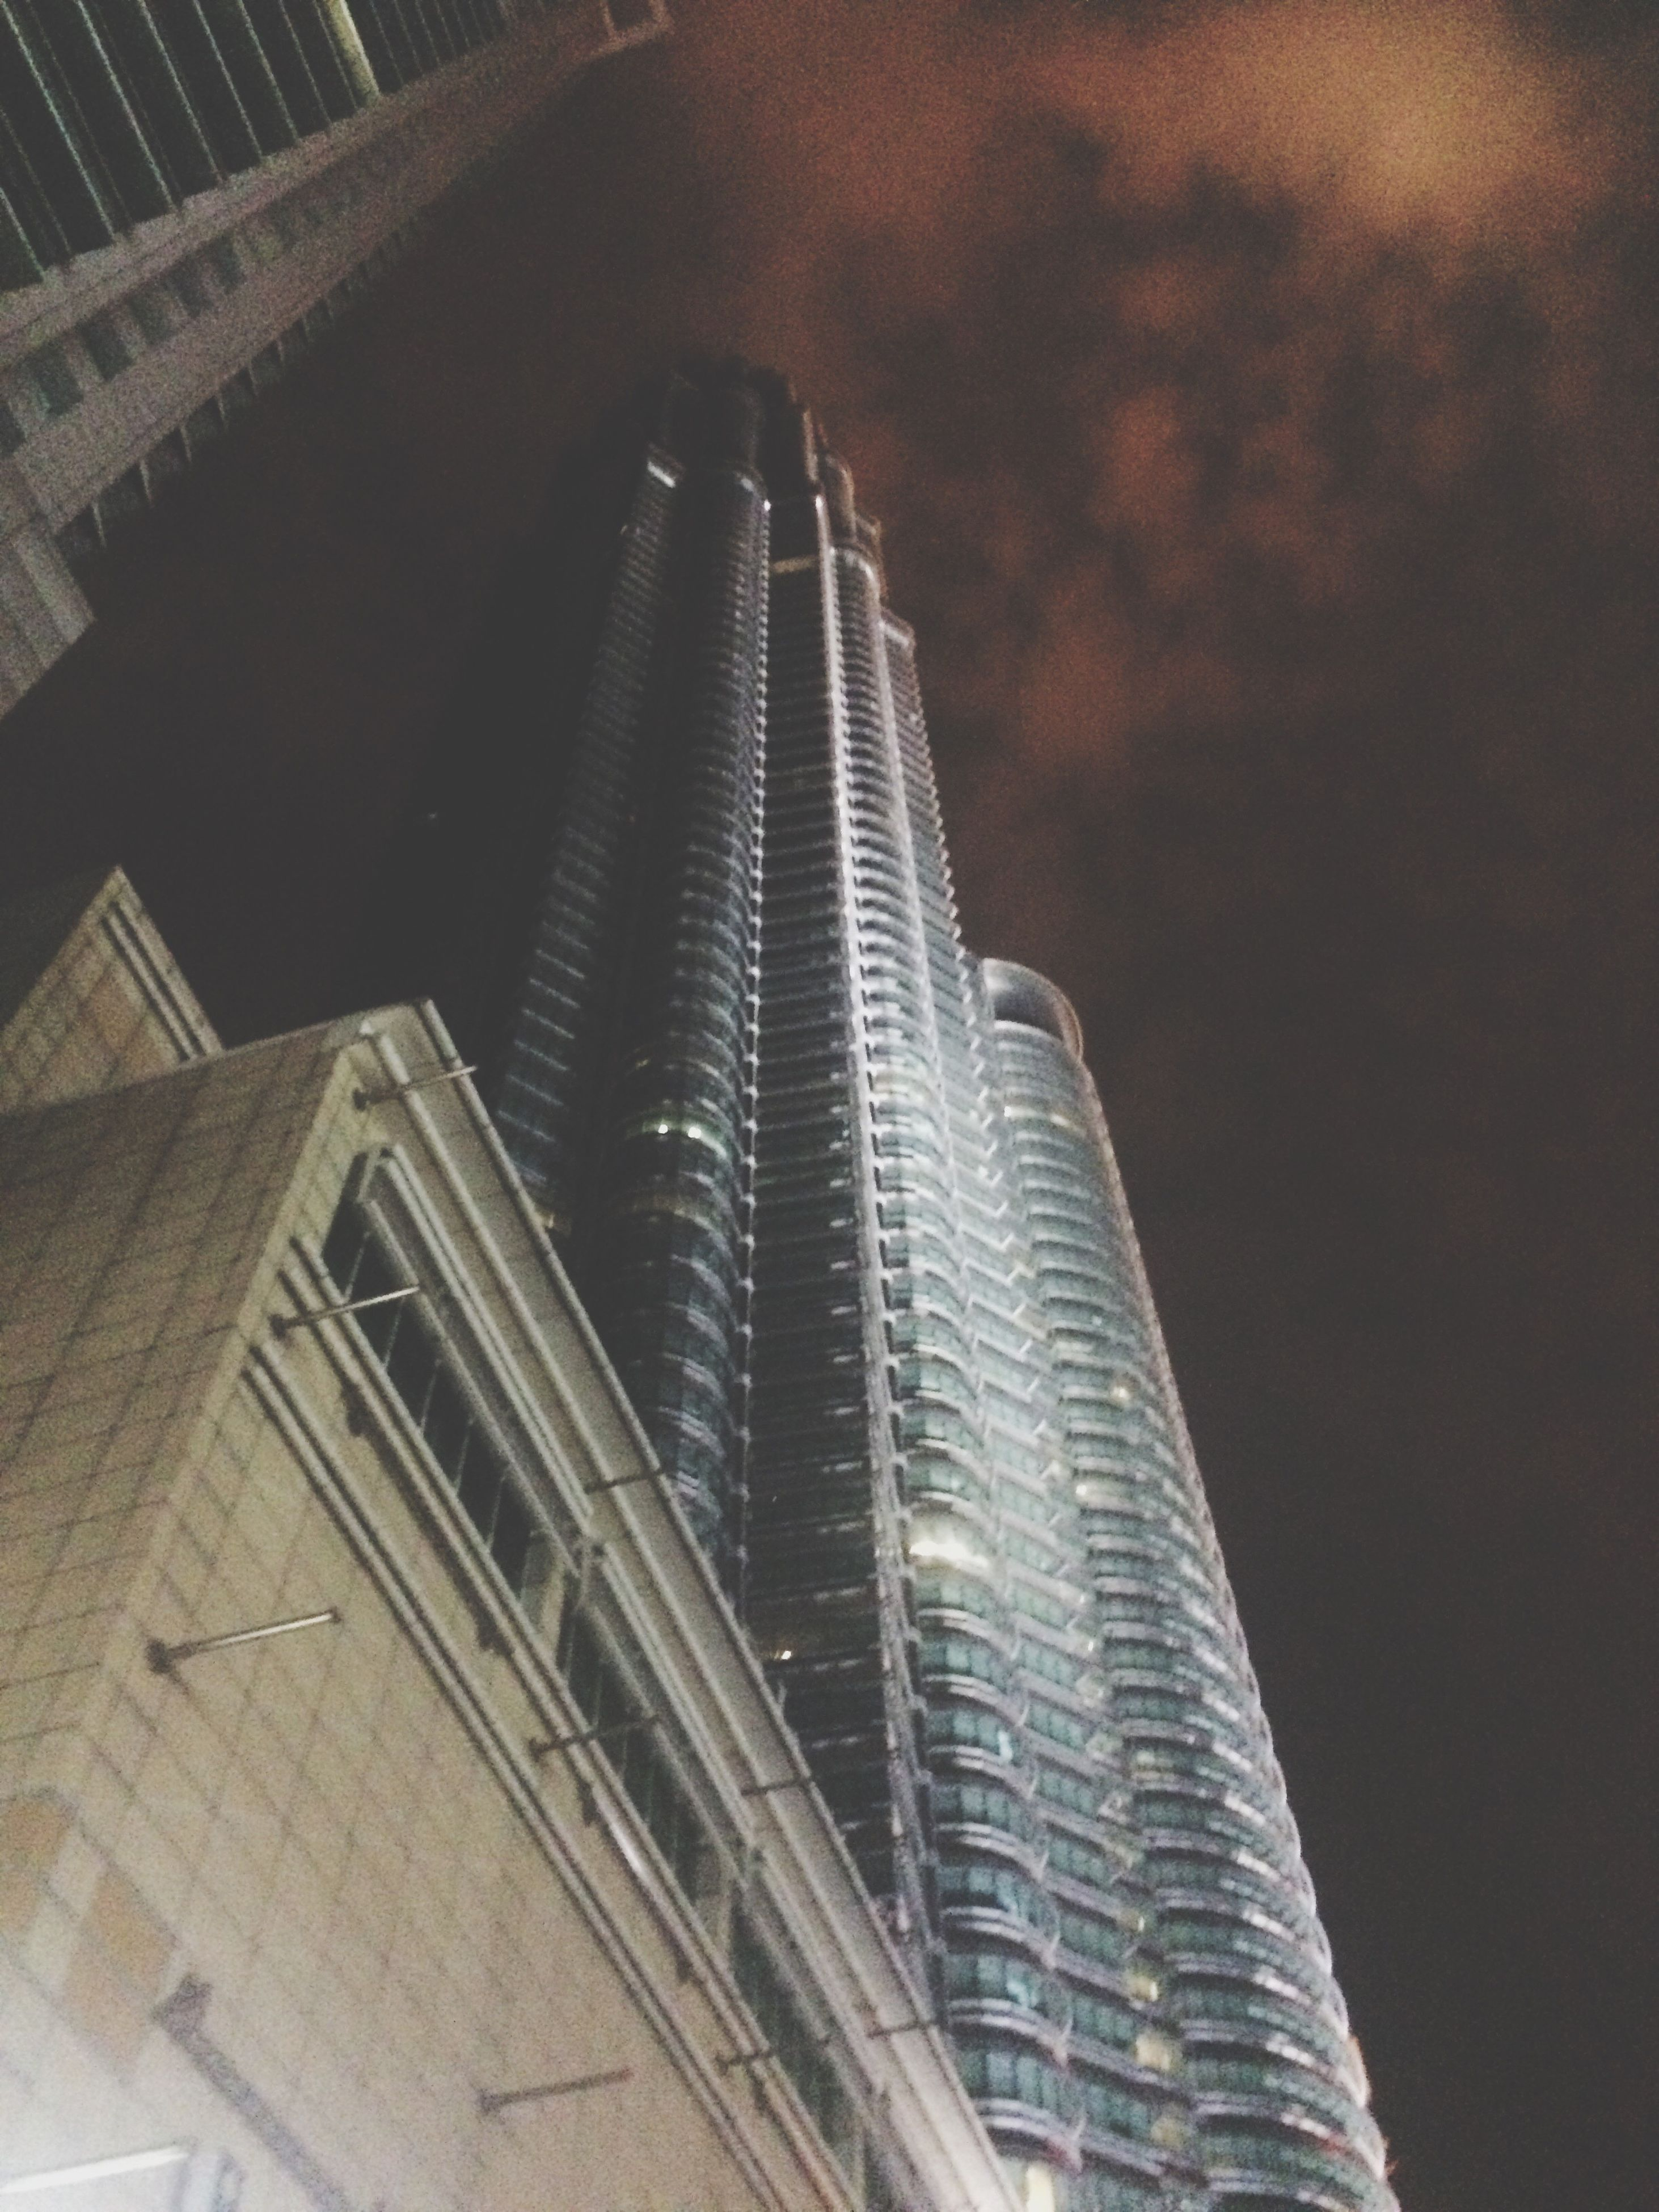 low angle view, architecture, building exterior, skyscraper, built structure, tall - high, tower, city, sky, office building, modern, travel destinations, city life, building story, architectural feature, capital cities, tall, outdoors, growth, spire, development, urban skyline, no people